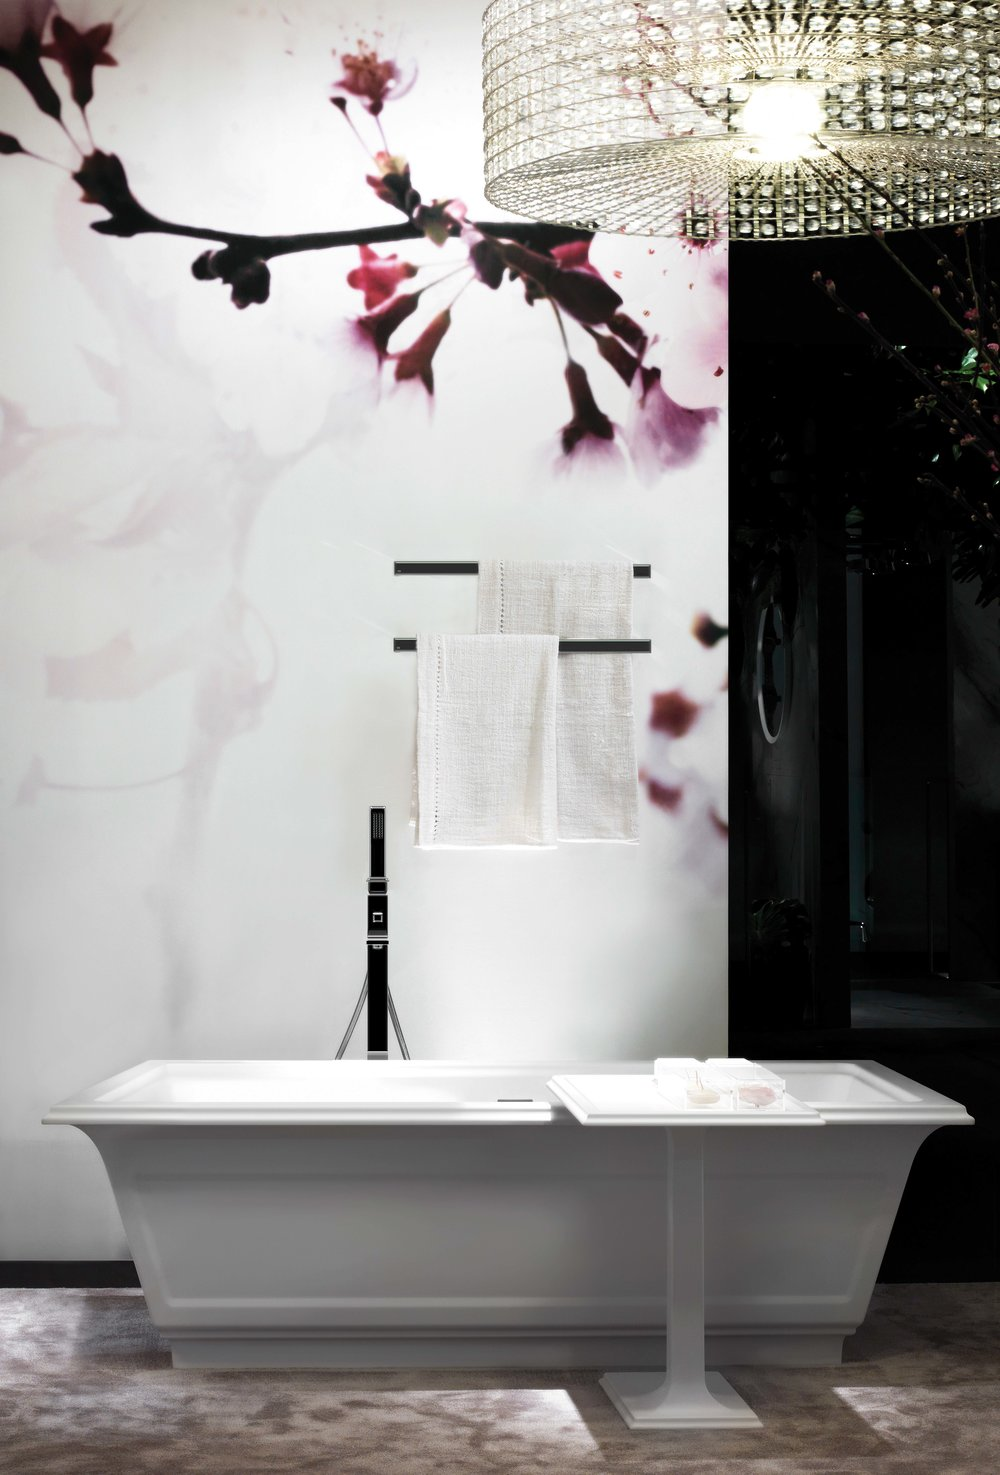 Gessi Eleganza Bath Geometric, classically inspired freestanding bathtub. At Cantu Bathrooms, (604) 688-1252 cantubathrooms.com